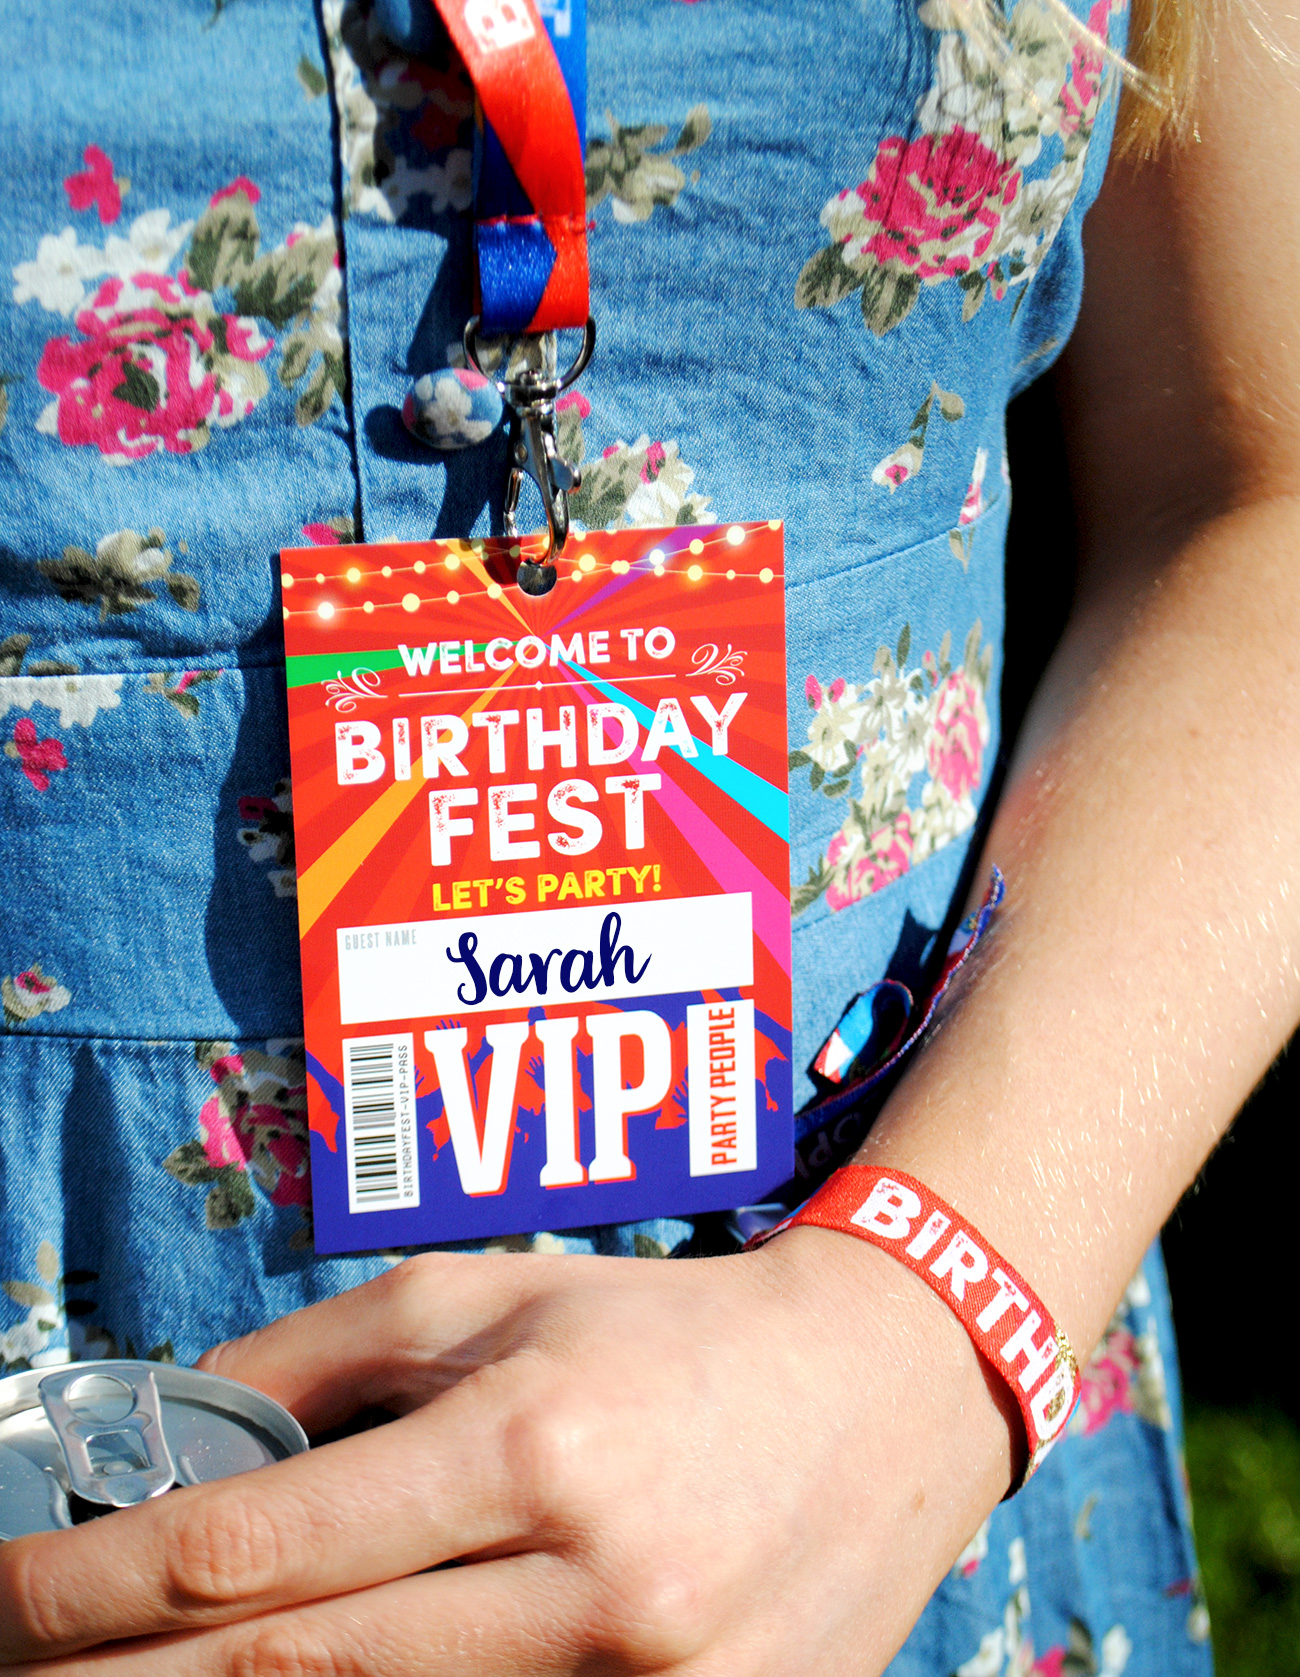 festival birthday party vip lanyards wristbands